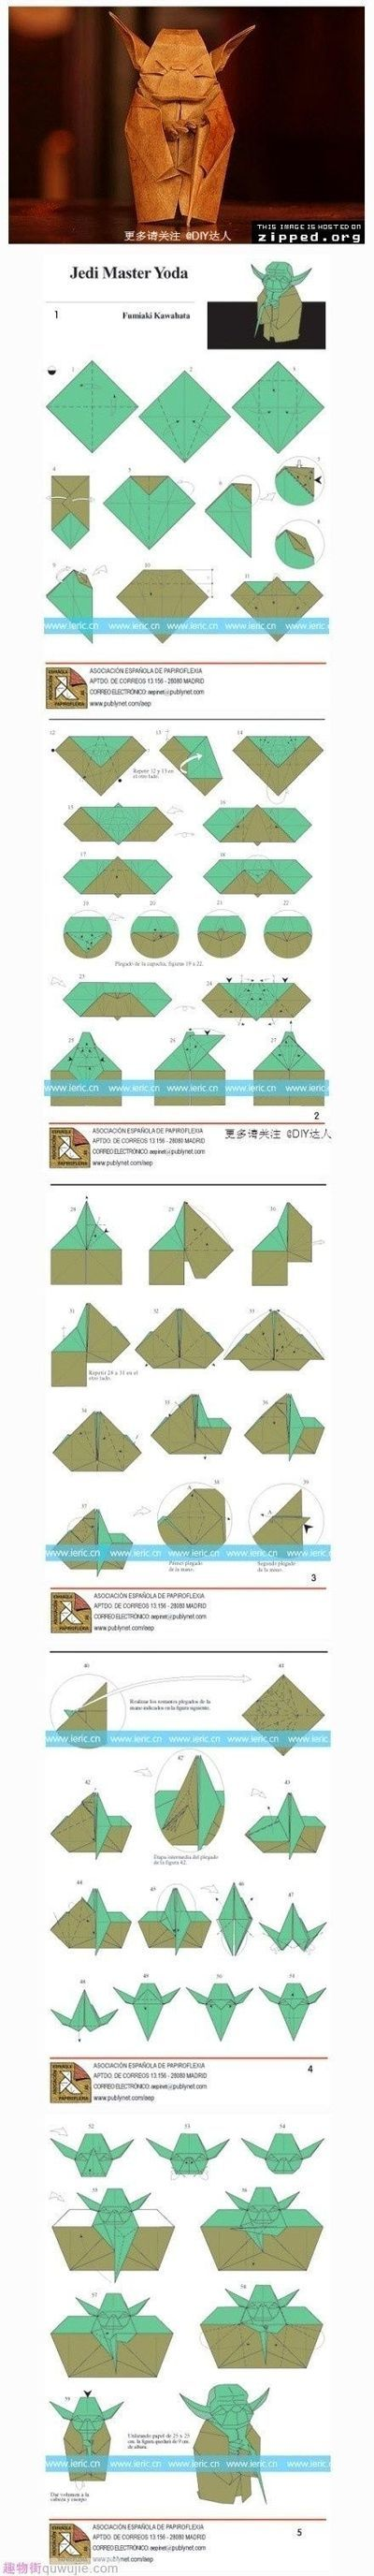 Yoda Diagram Origami Pinterest And Craft For More Photos Diagrams Tutorials Of His Cool Star War Tutorialorigami